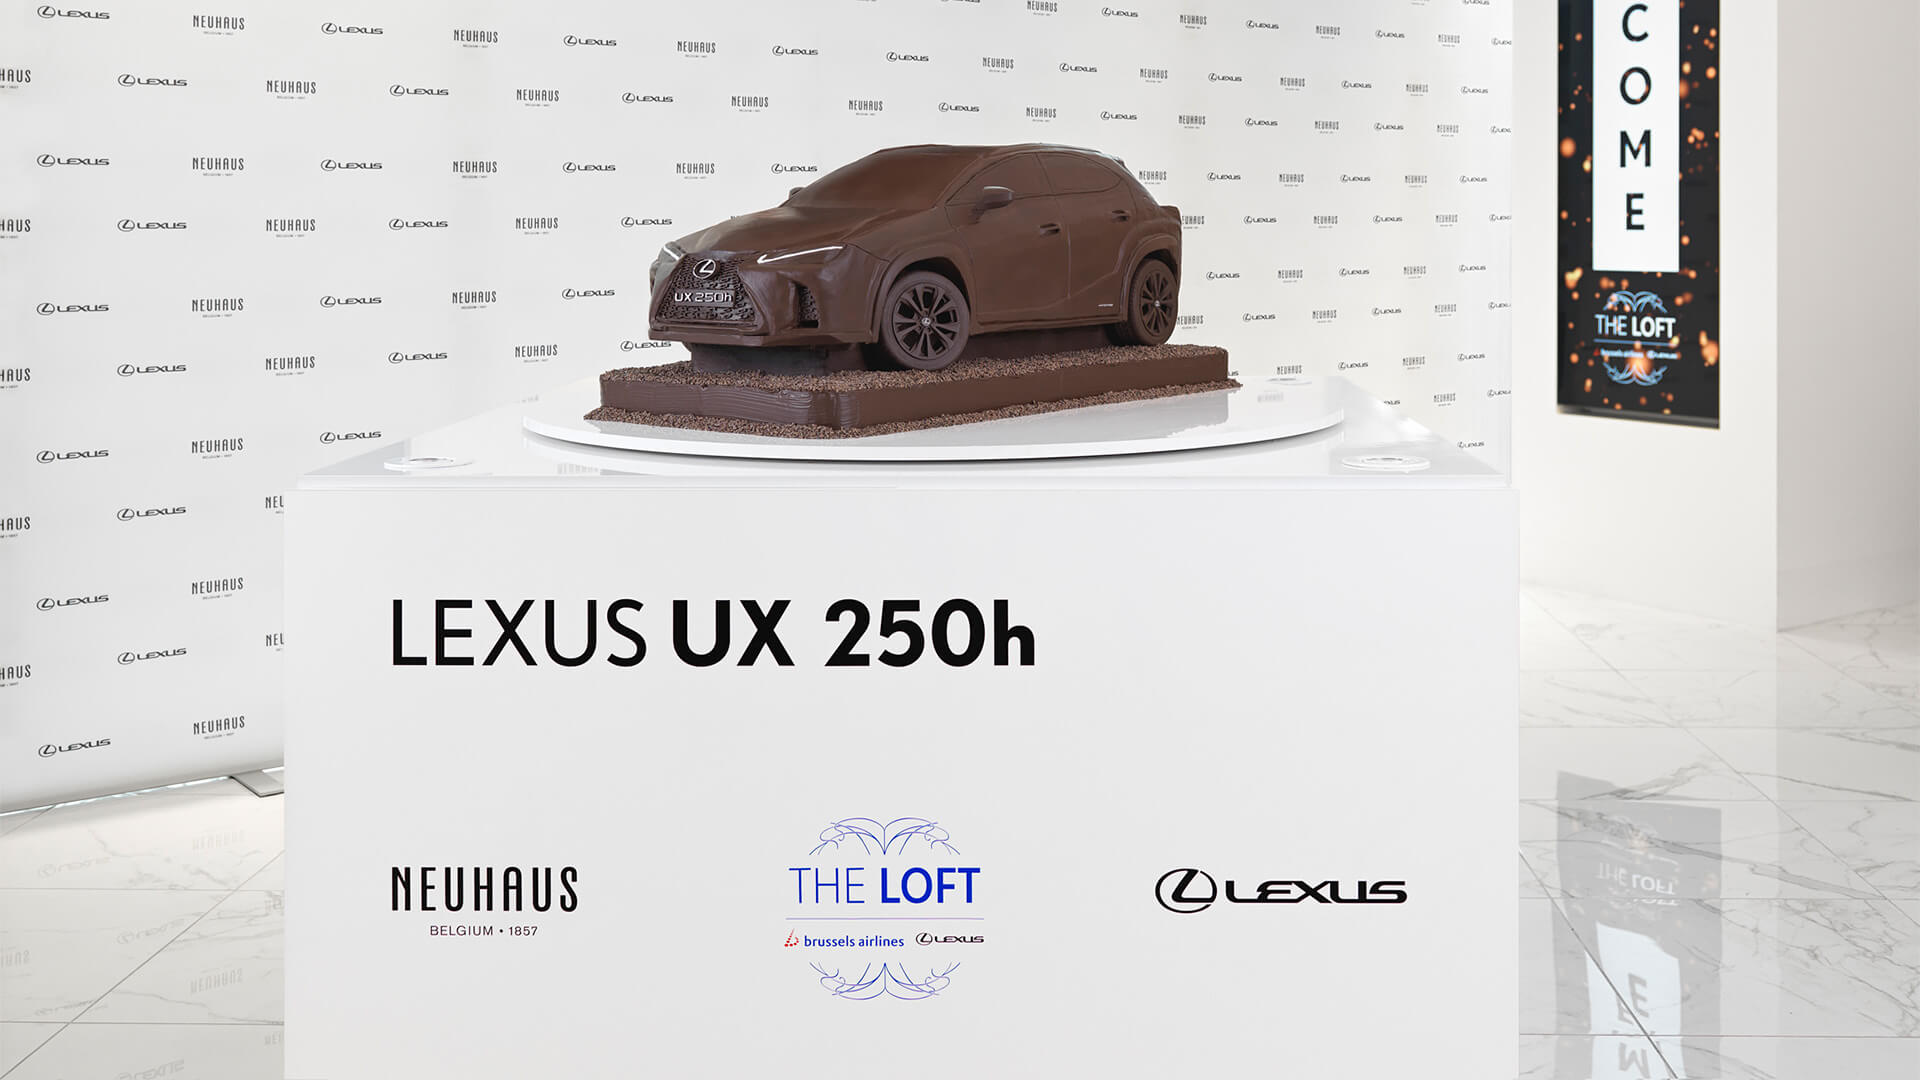 2019 lexus lounge UX Chocolate Car 1920x1080 04